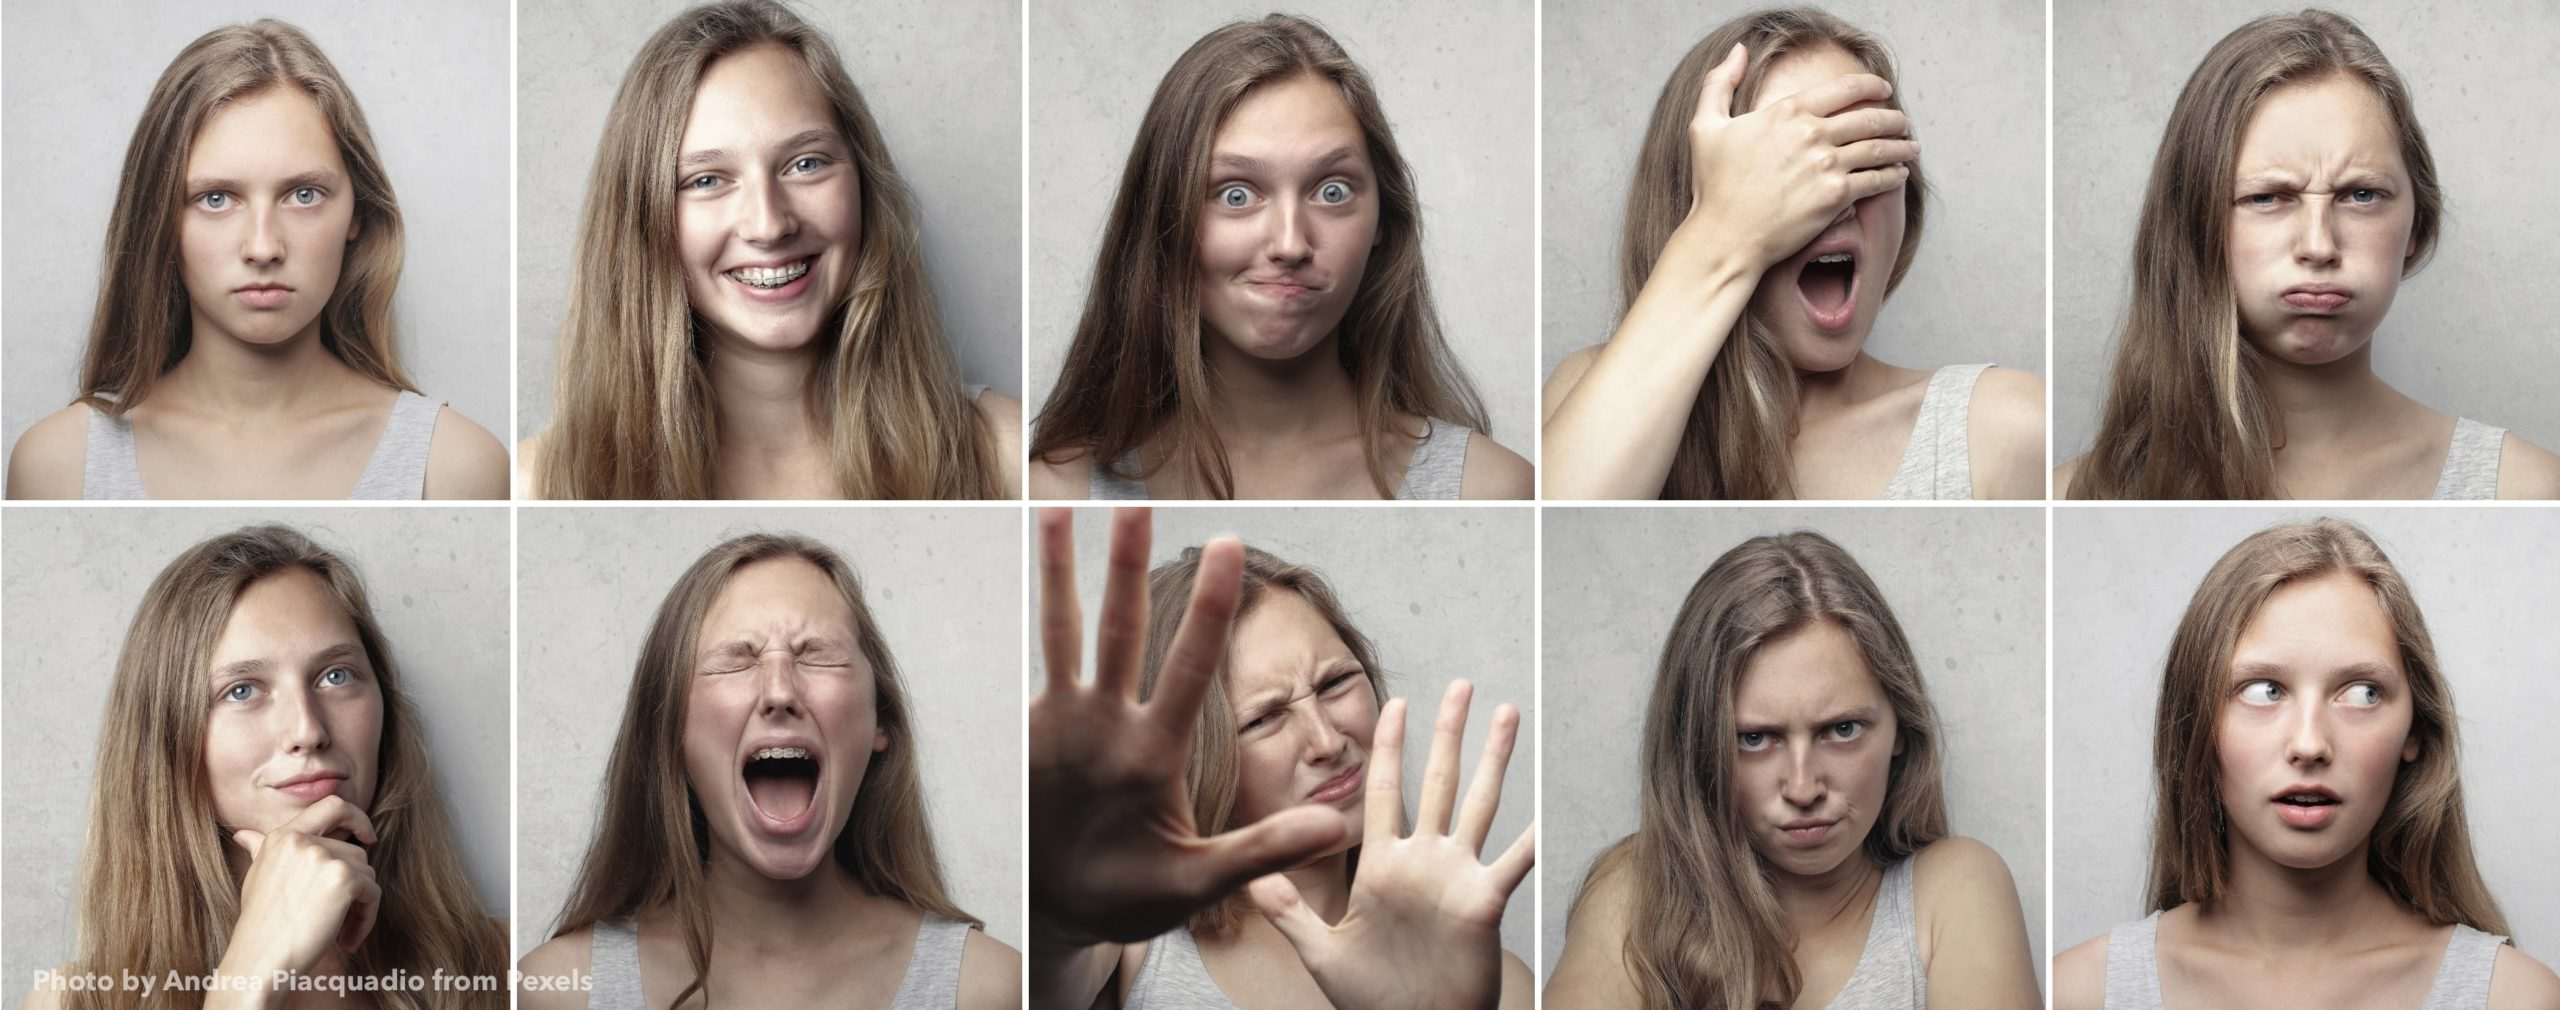 Faces with varied emotions